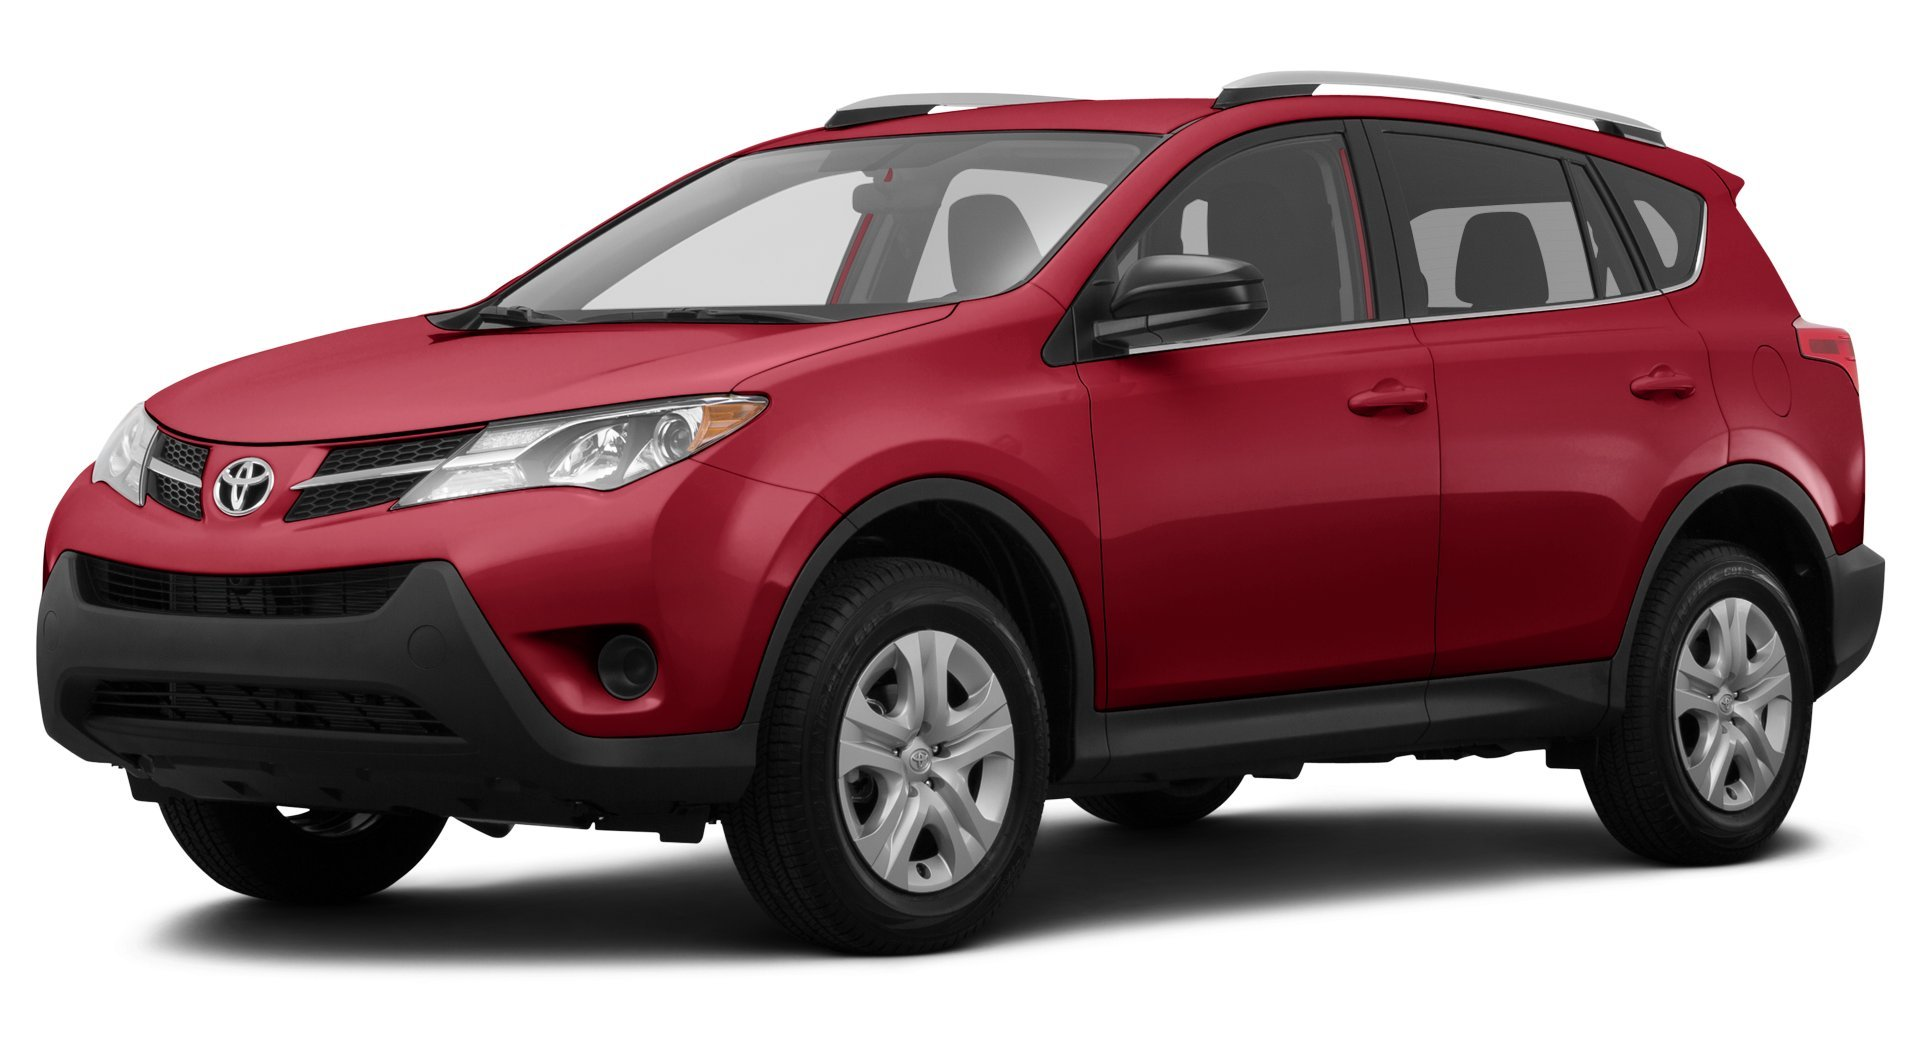 2015 subaru outback reviews images and specs. Black Bedroom Furniture Sets. Home Design Ideas